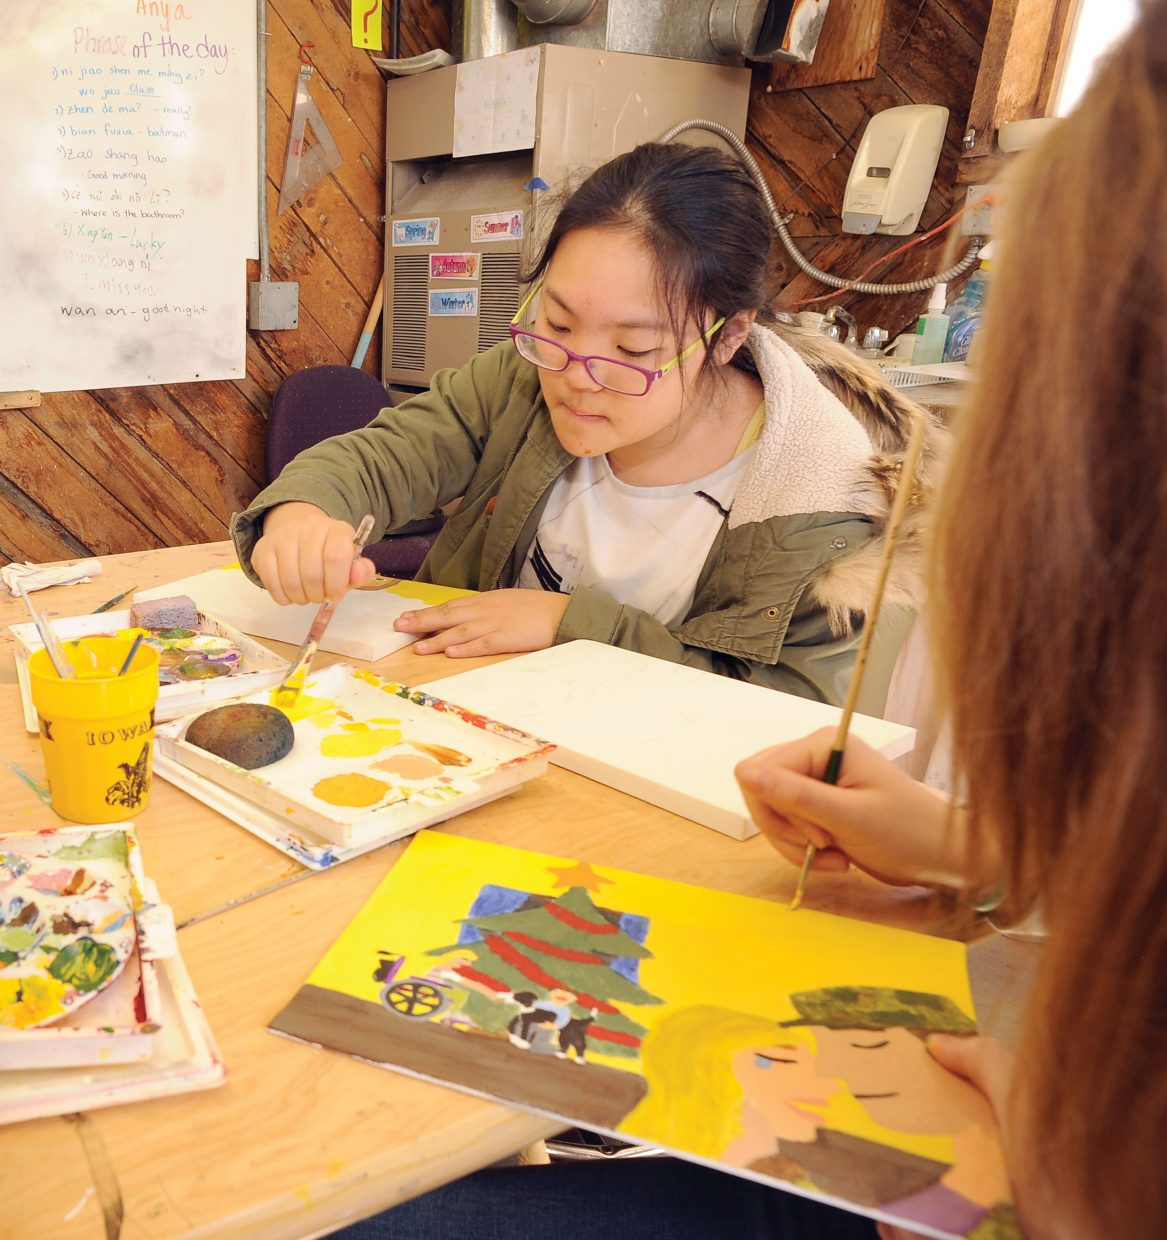 Art student Merry Ma works on an illustration for Trish Carpenter's most recent children's book. The students in Claire Gittleman's art class at The Lowell Whiteman School have made illustrating the book part of a class project.